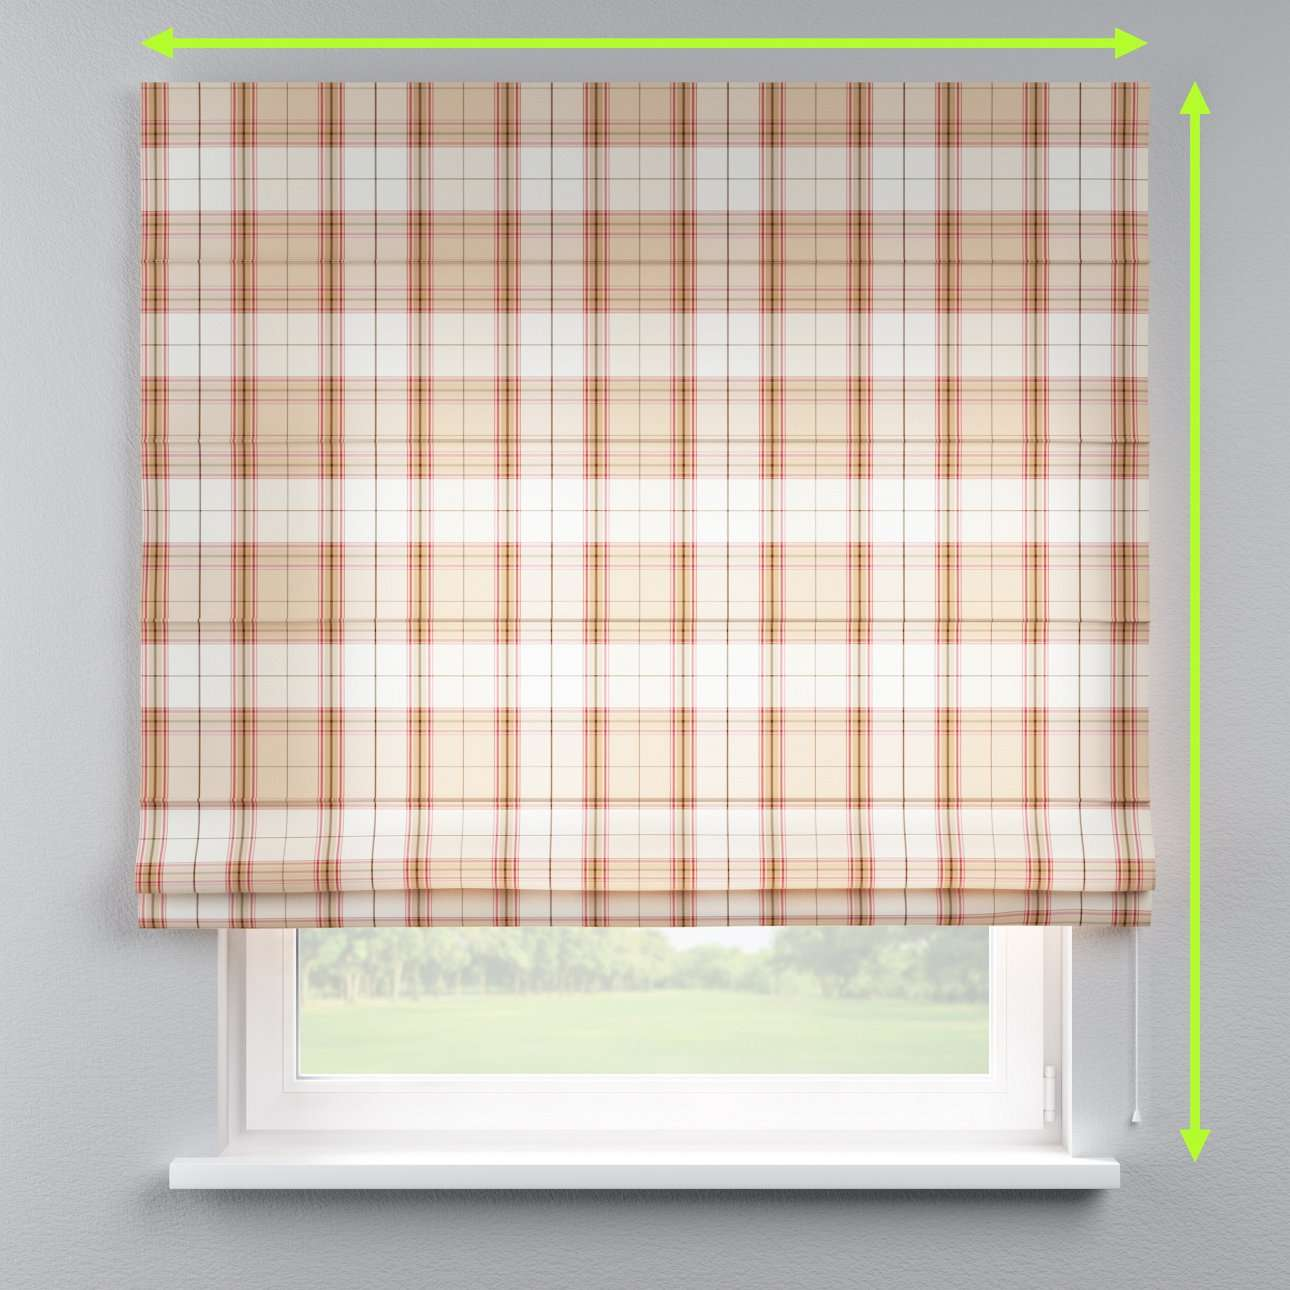 Capri roman blind in collection Bristol, fabric: 125-09